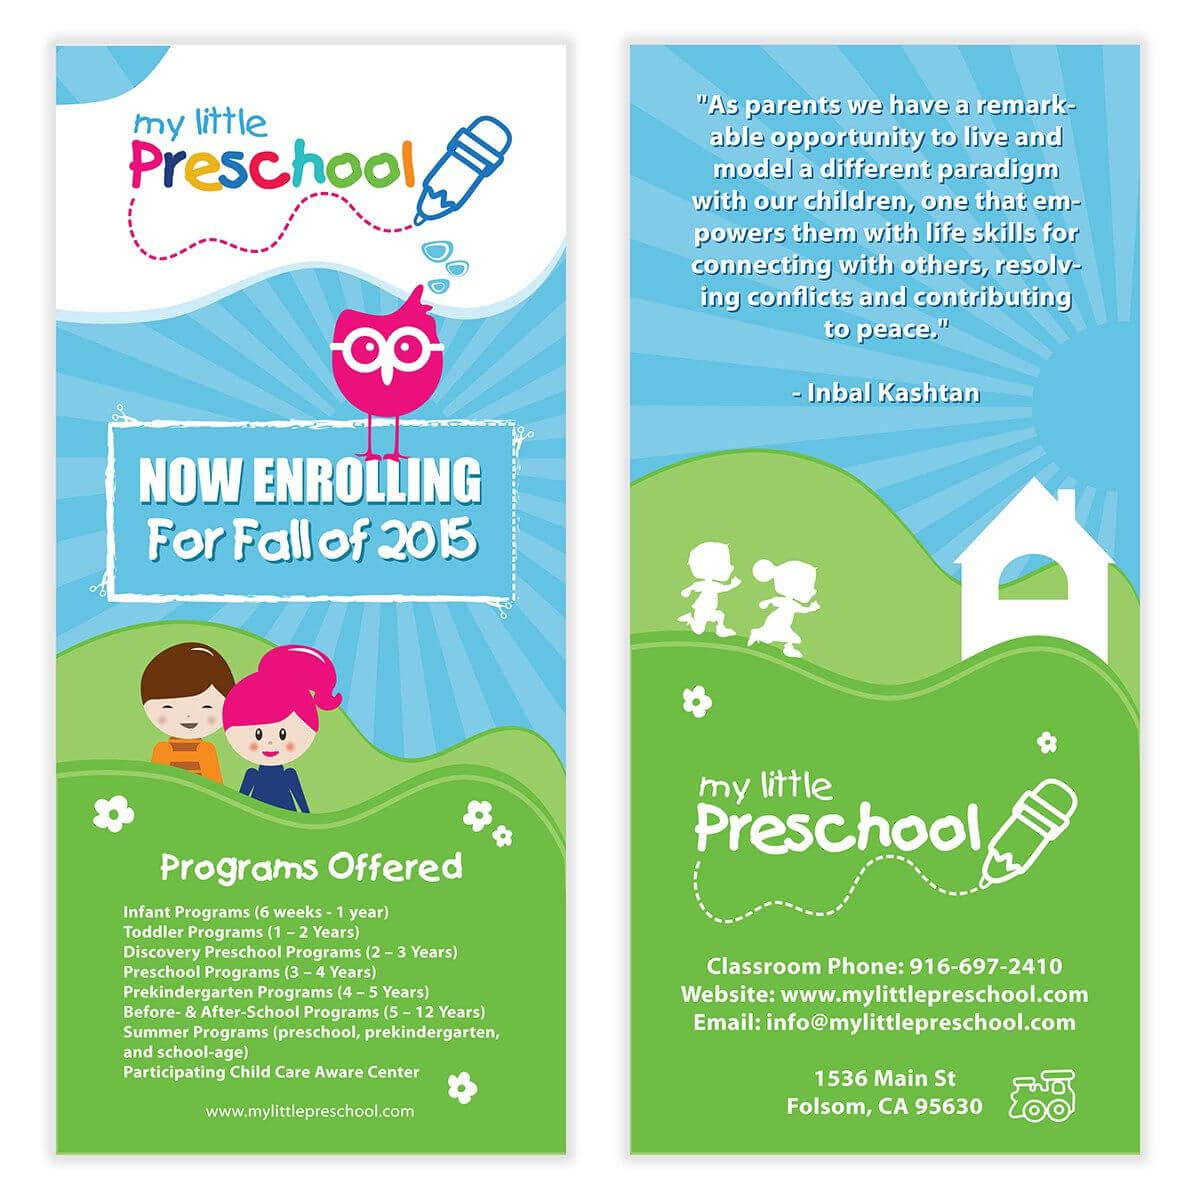 Preschool Flyer Template 06 | Chakra Posters, Flyers regarding Daycare Brochure Template